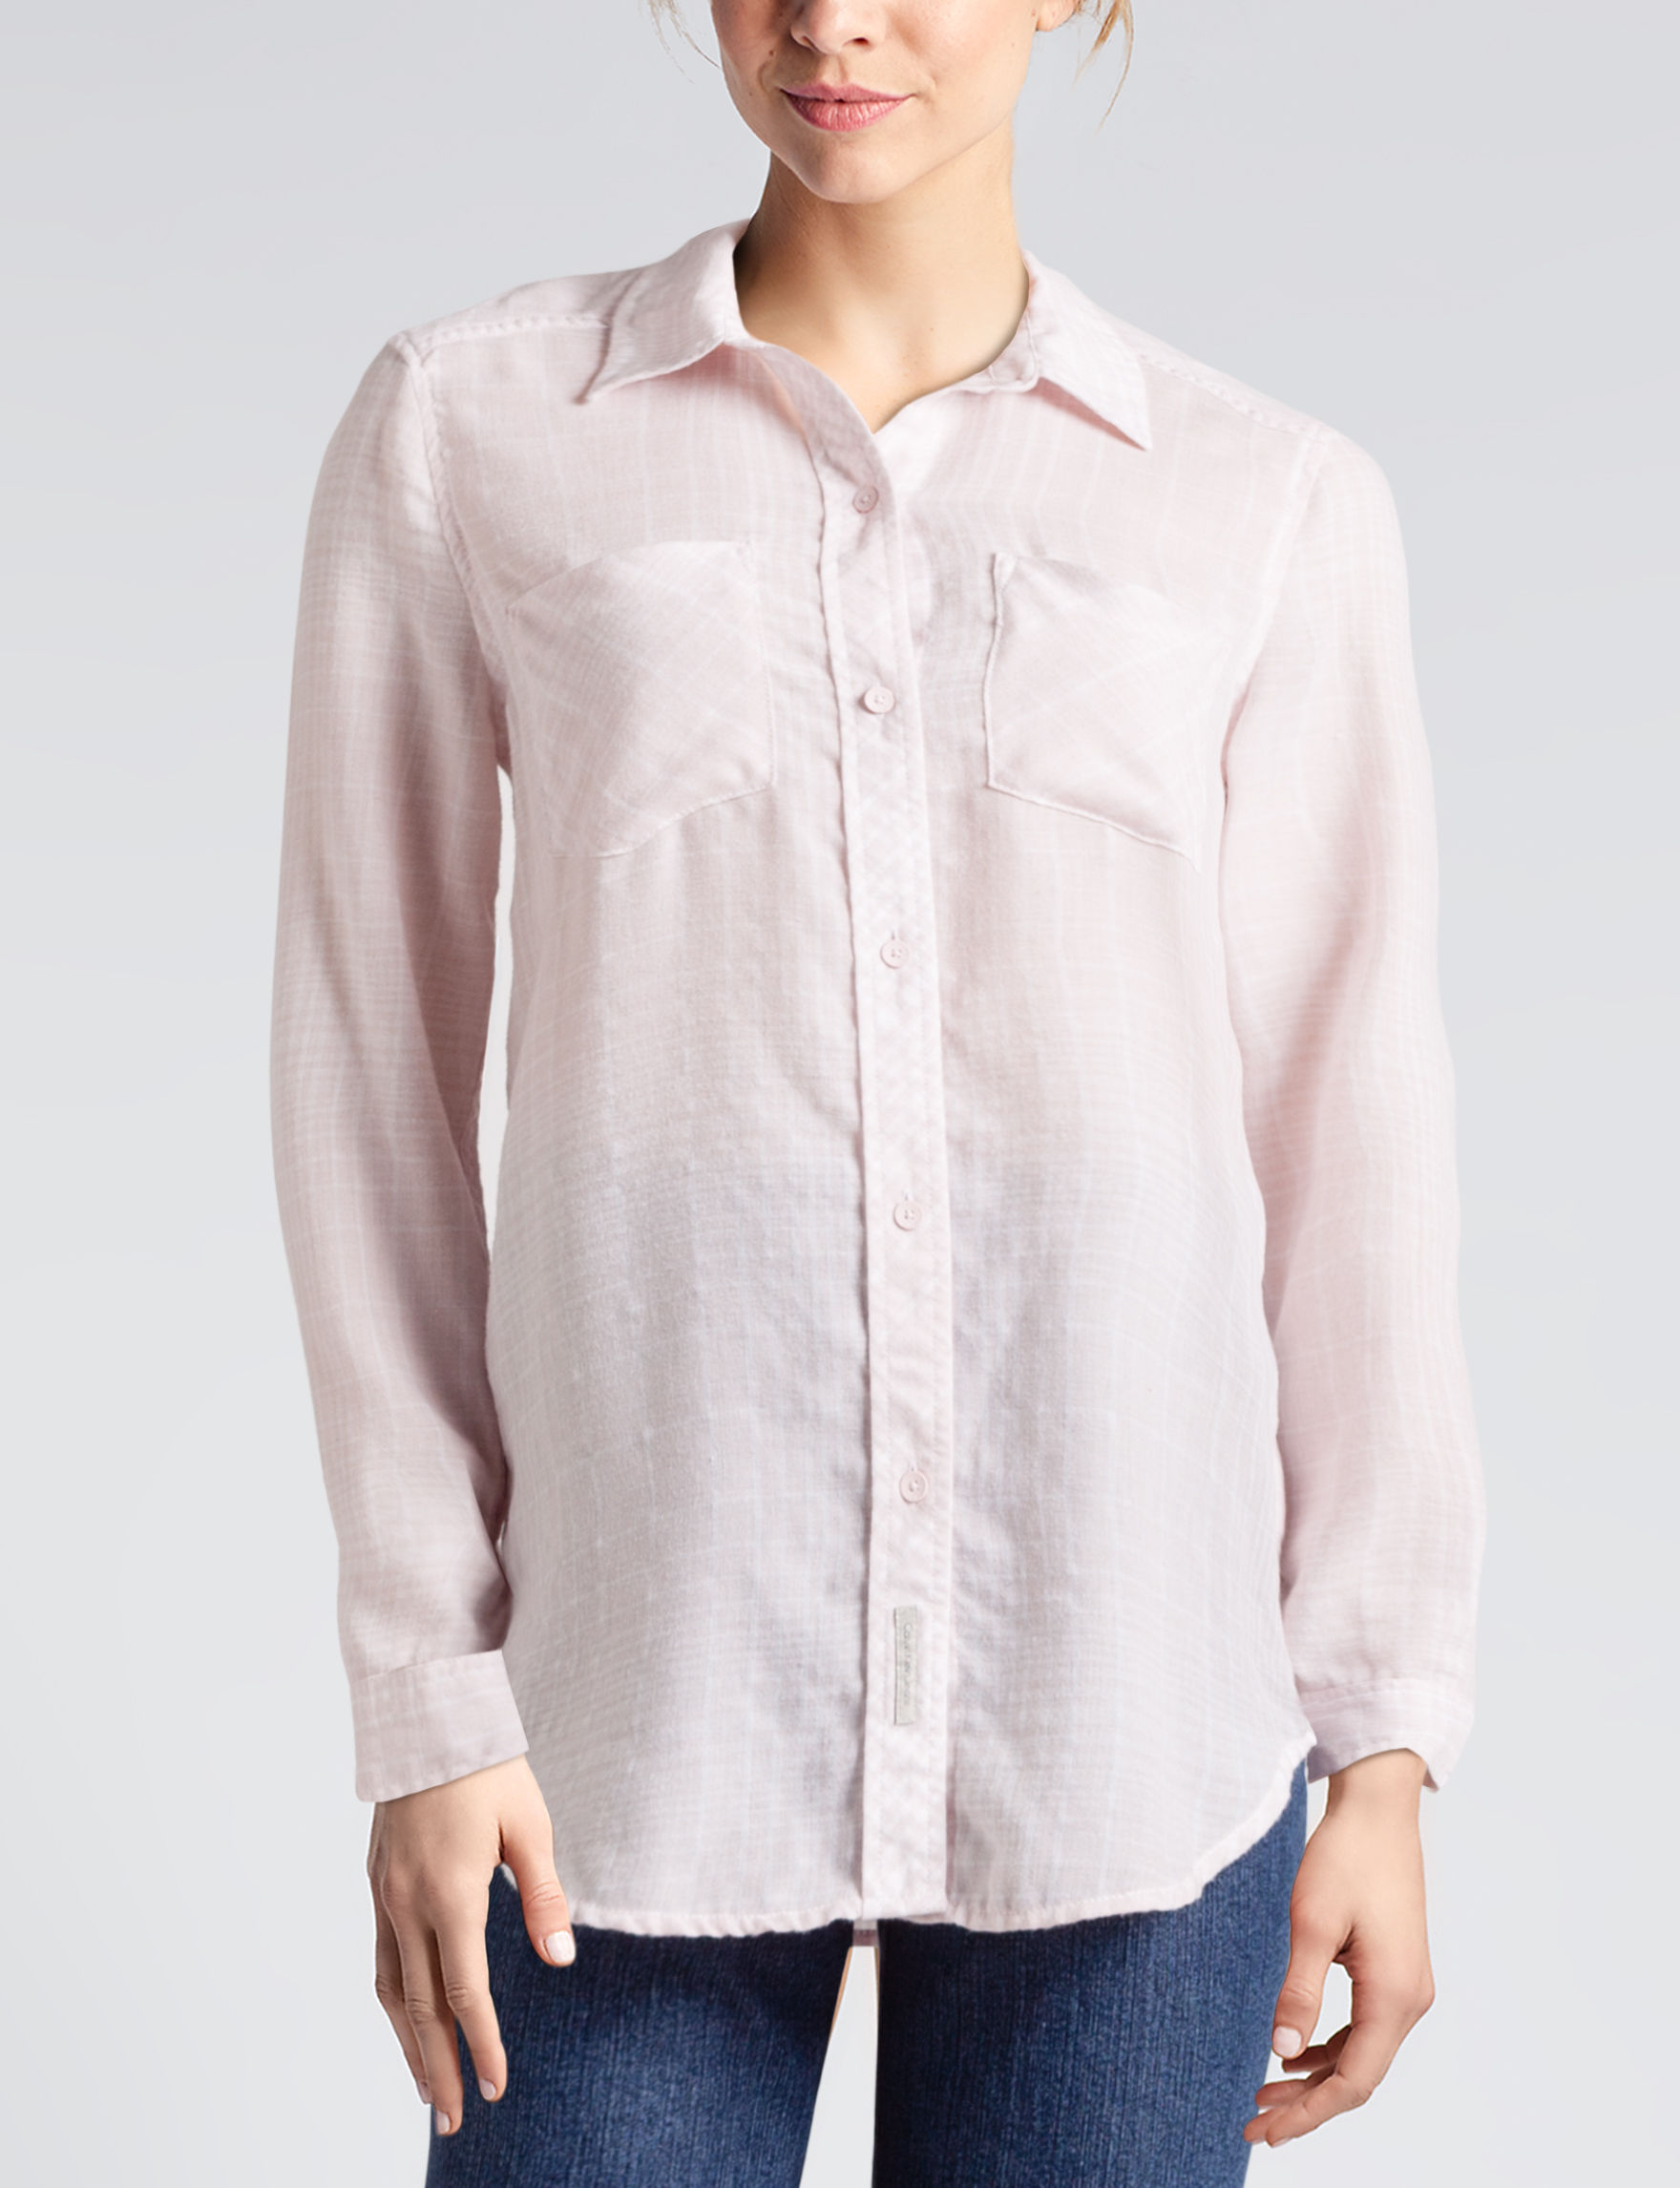 Calvin Klein Jeans Pink Shirts & Blouses